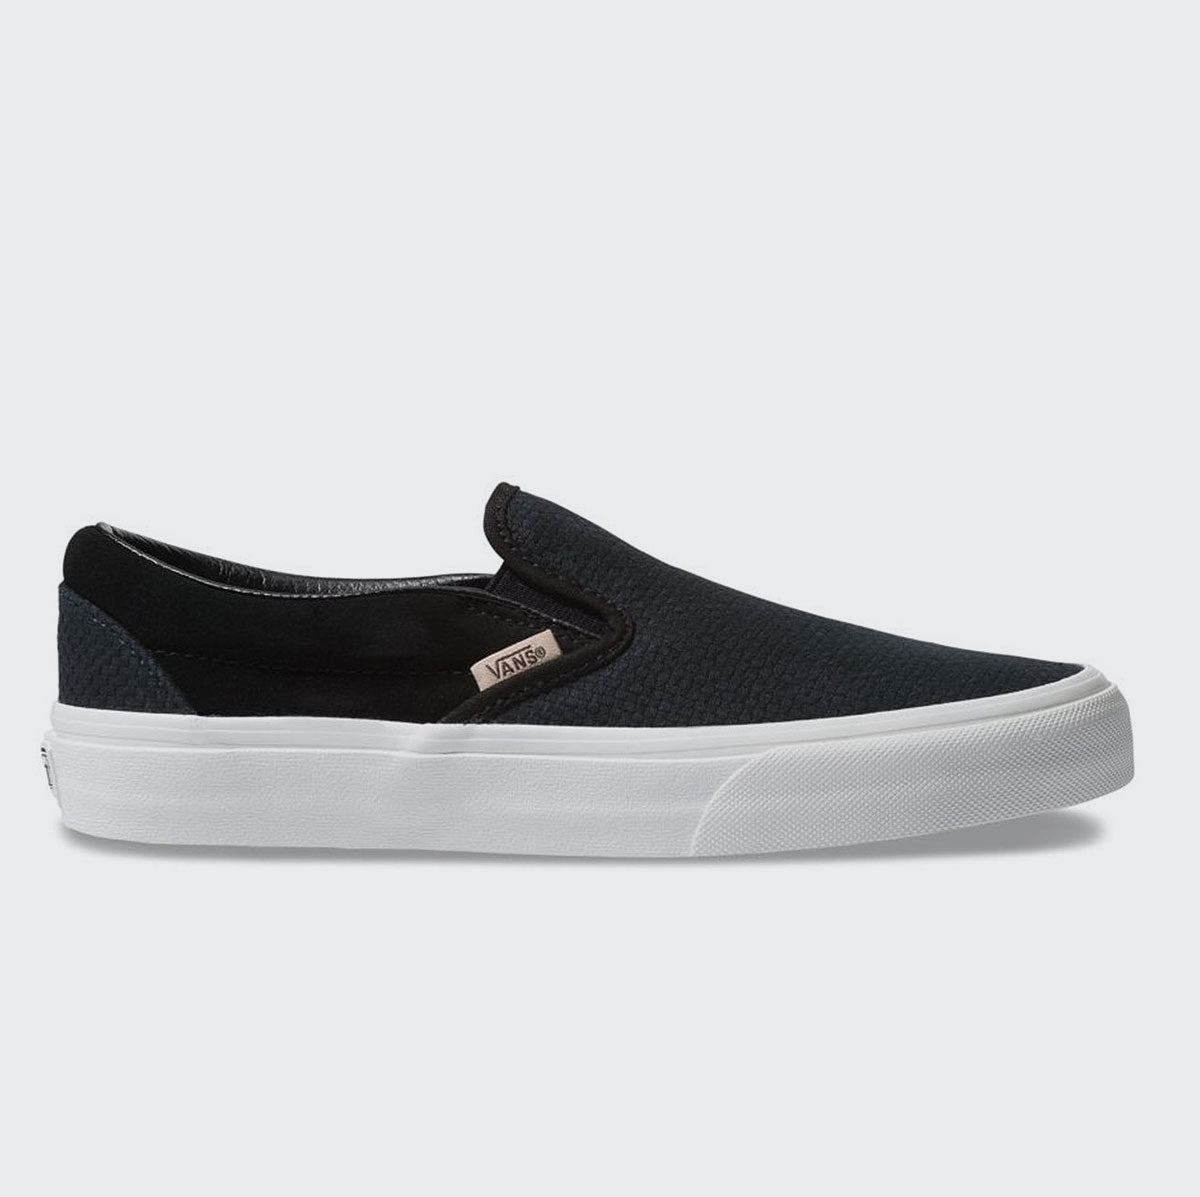 Vans Classic Slip On Woven Check - Black/Snow White